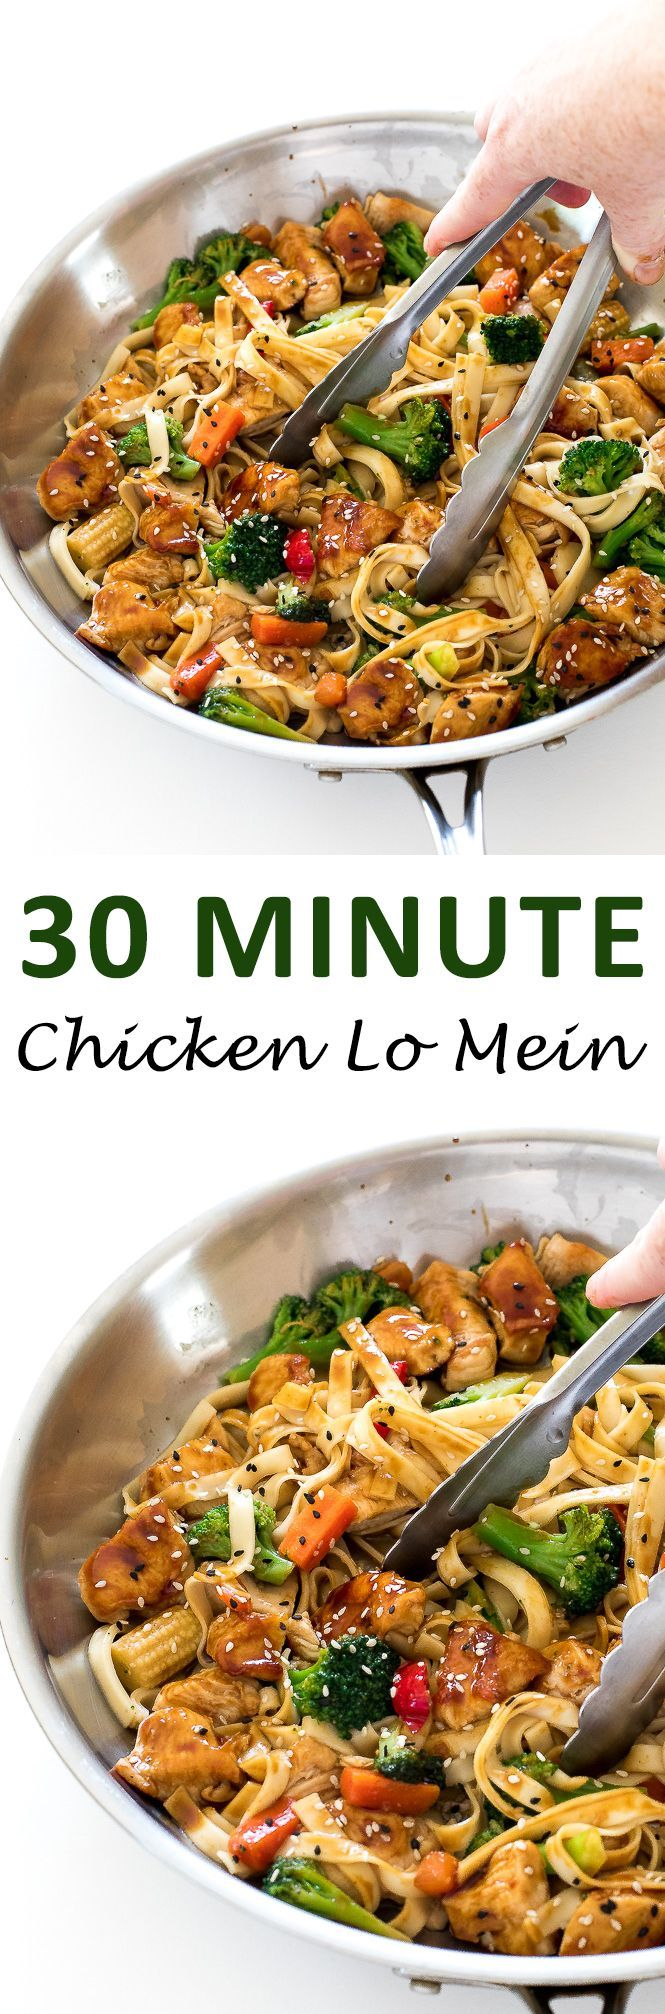 Chicken Lo Mein. Ready in under 30 minutes and tastes way better and is healthier that takeout!   chefsavvy.com #recipe #chicken #dinner #lo #mein